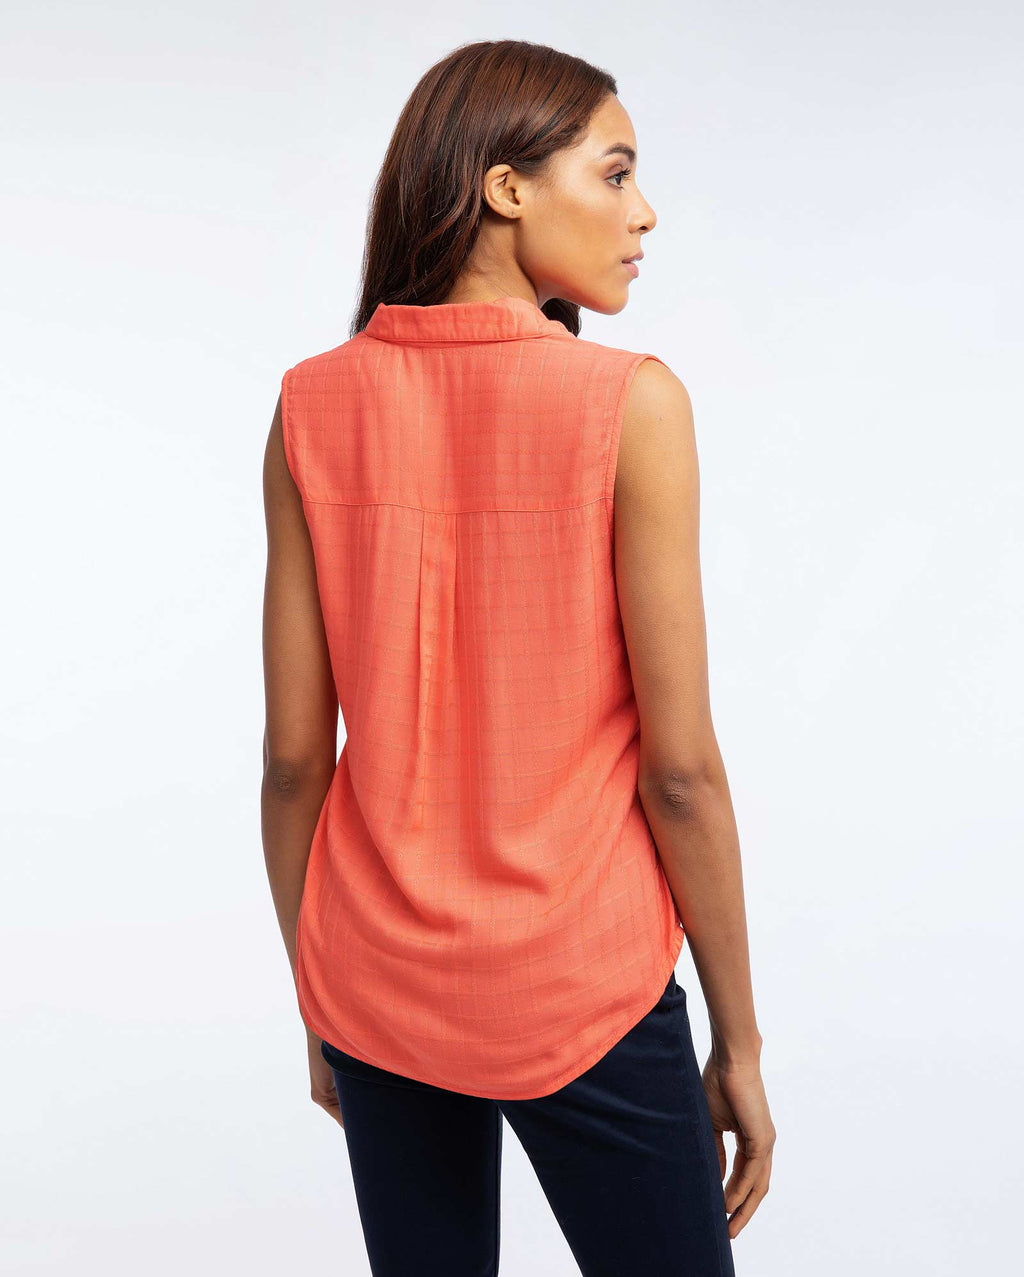 Blusa Sin Mangas Mujer Coral